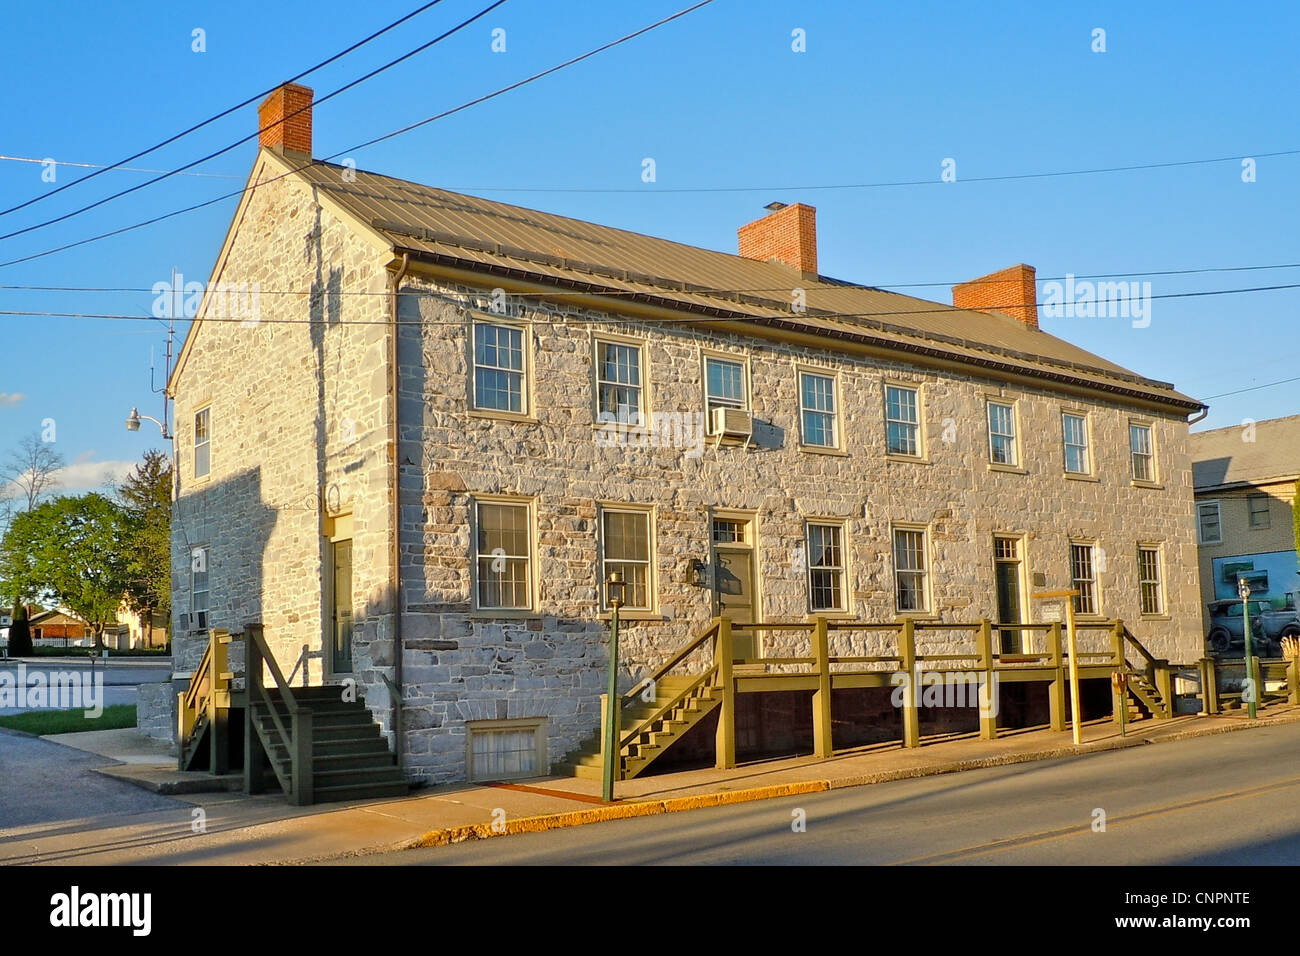 Fulton House on the NRHP since July 20, 1977. At 112–116 Lincoln Way East, McConnellsburg, Fulton County, Pennsylvania. - Stock Image